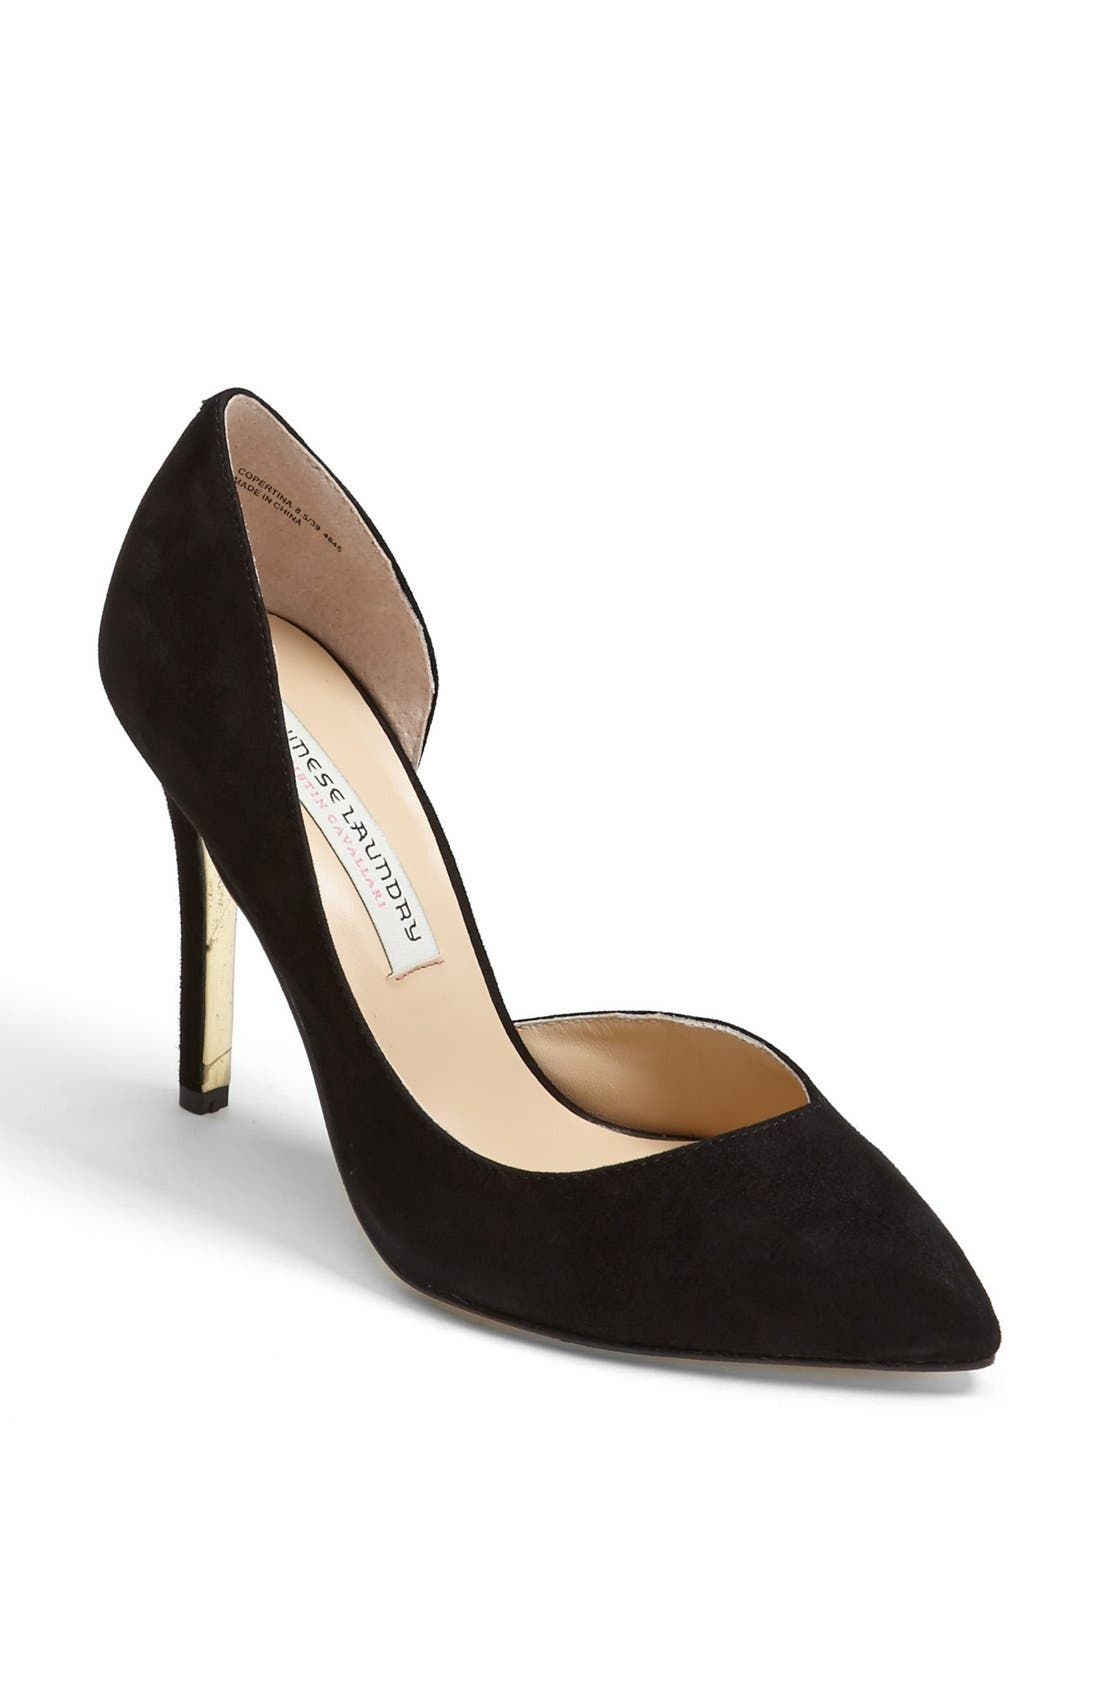 'Copertina' Pump,                         Main,                         color, 001